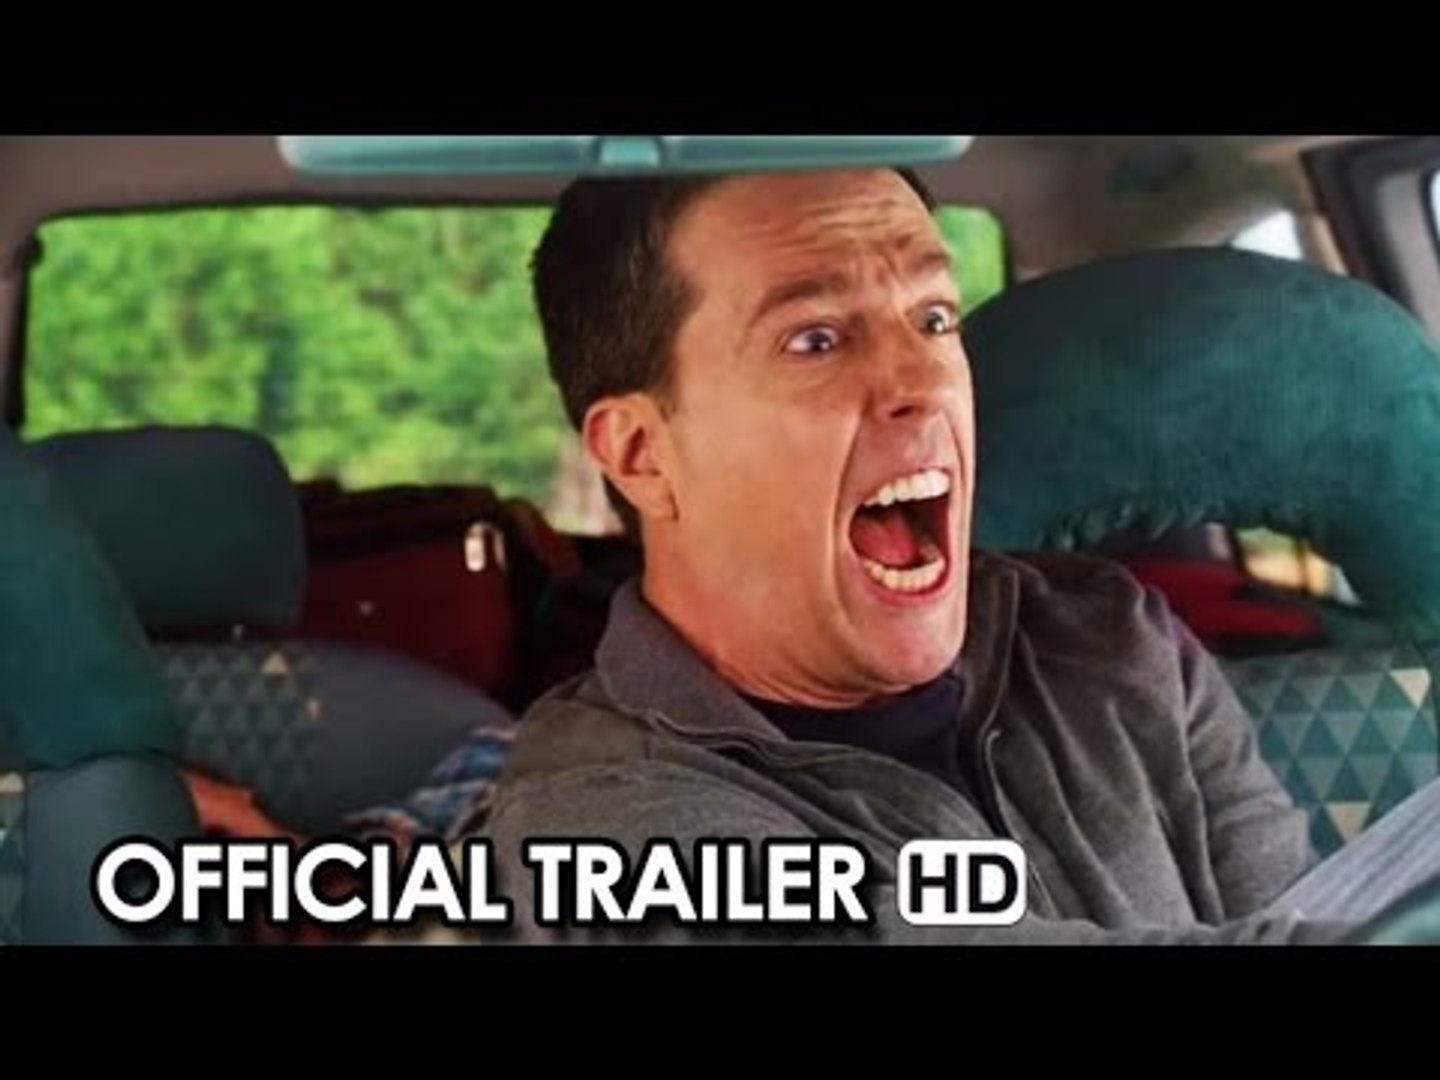 Vacation Official Trailer (2015) - Ed Helms, Christina Applegate HD